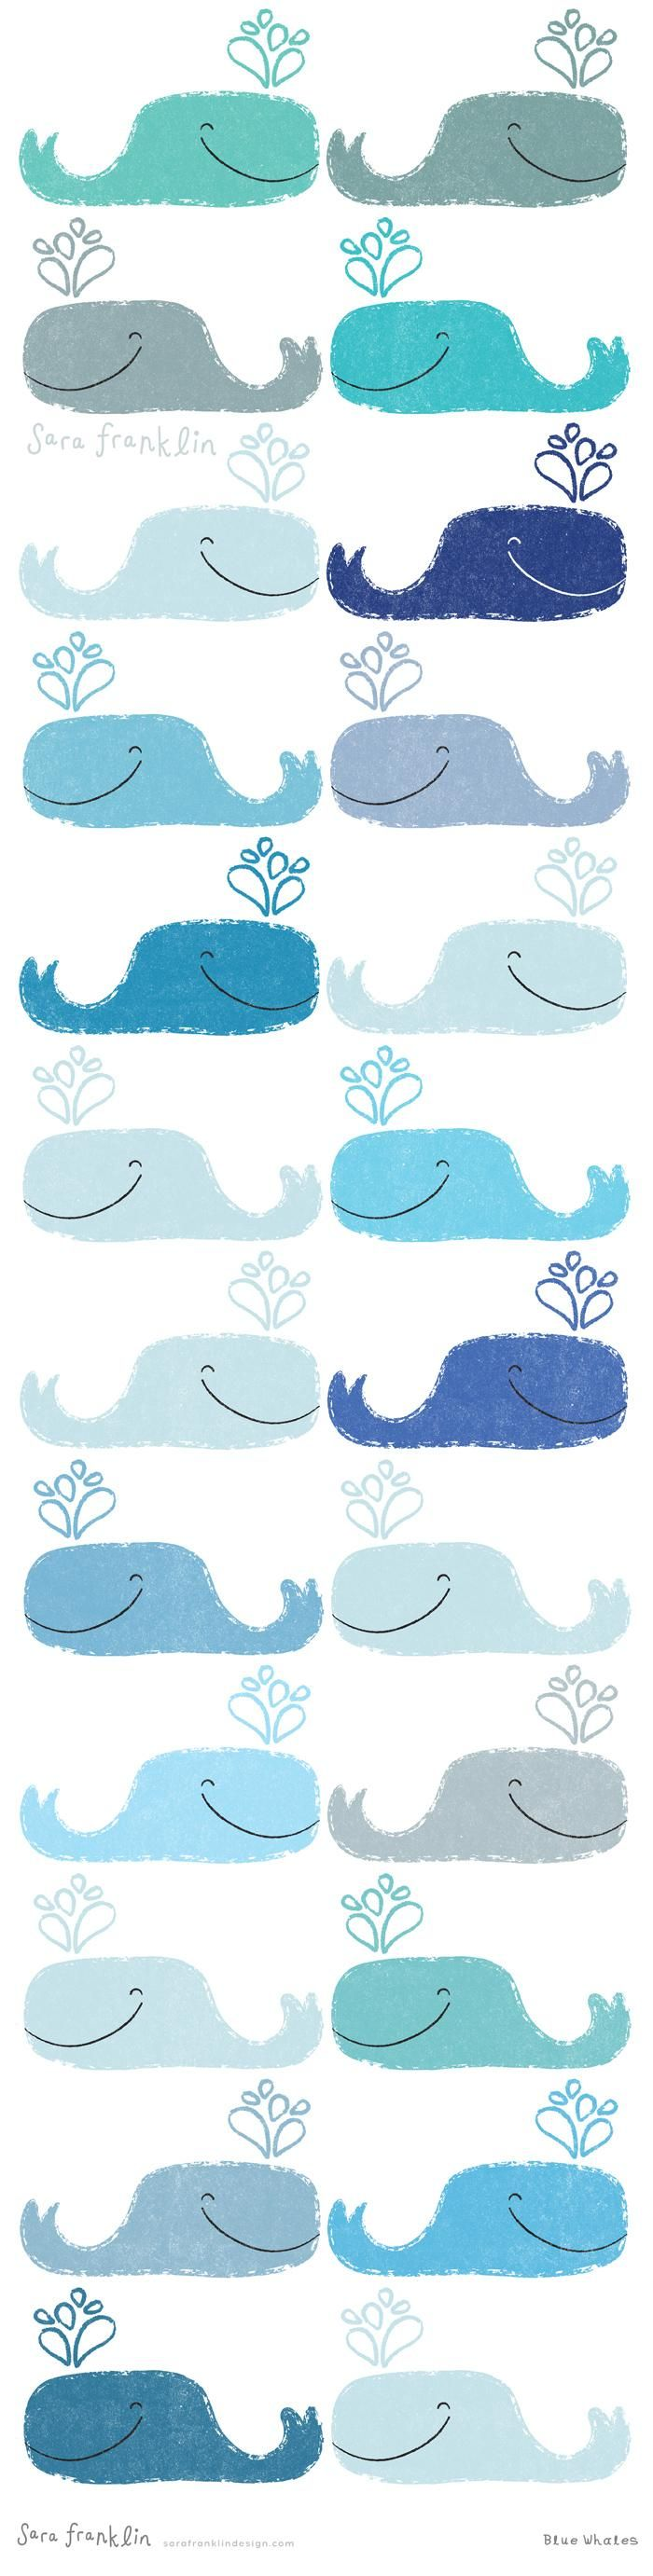 Blue Whales - image 1 - student project